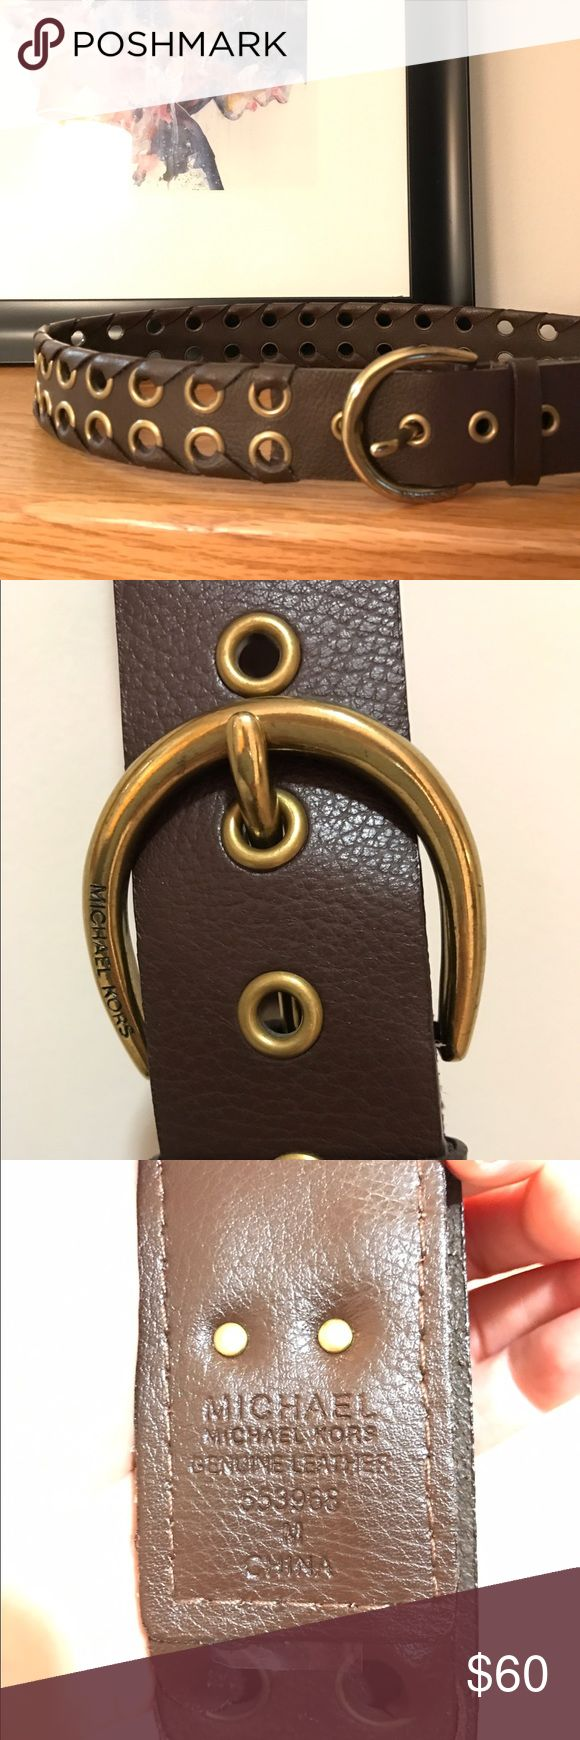 Brown & Gold Michael Kors belt Genuine brown leather belt with gold embellishments MICHAEL Michael Kors Accessories Belts